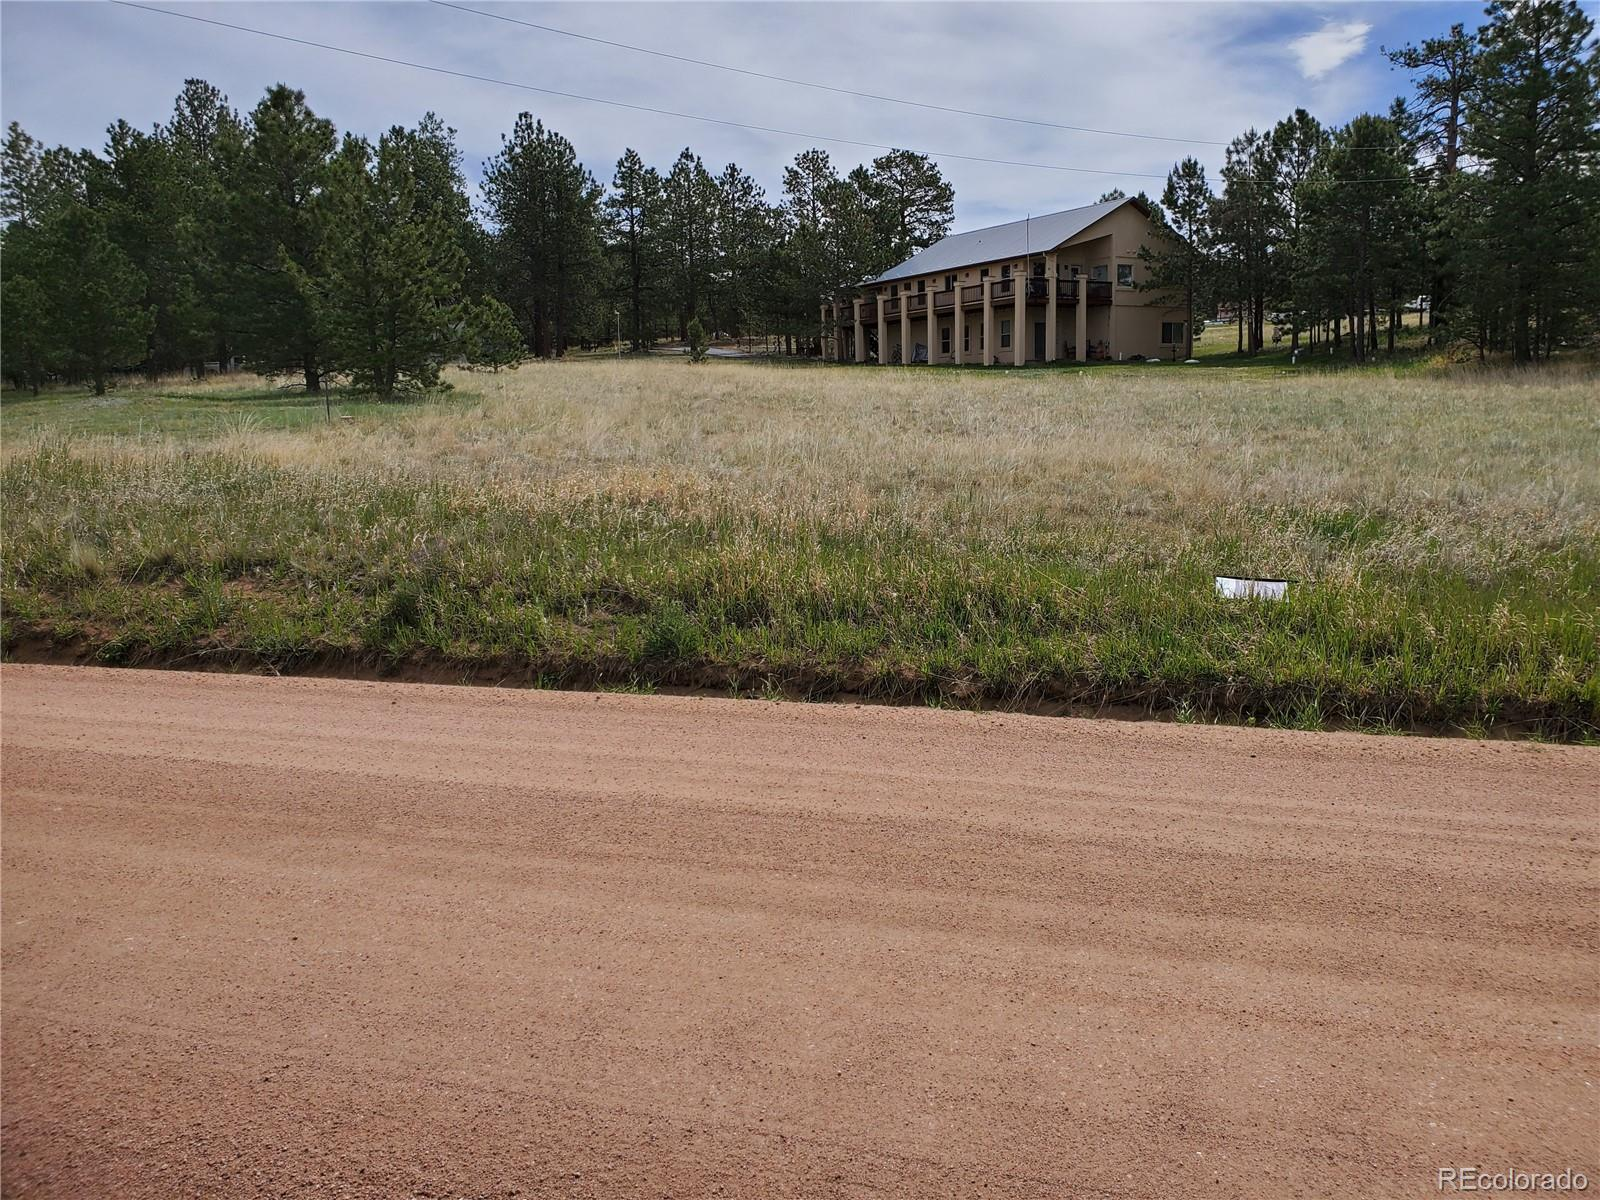 MLS# 5330137 - 2 - 484 Duesouth Road, Florissant, CO 80816